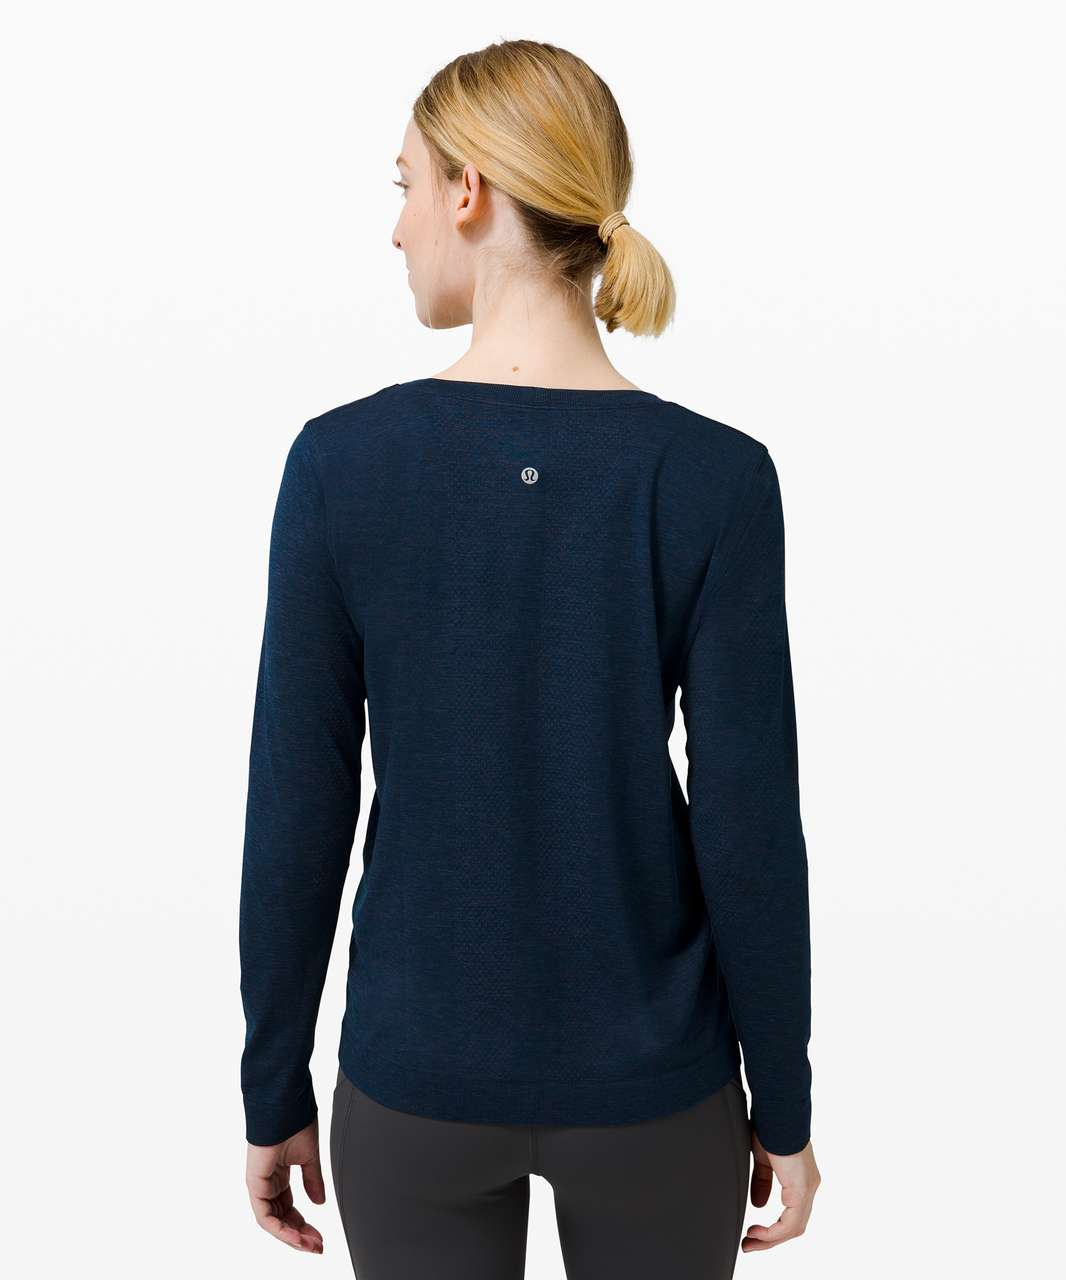 Lululemon Swiftly Relaxed Long Sleeve - Ink Blue / True Navy